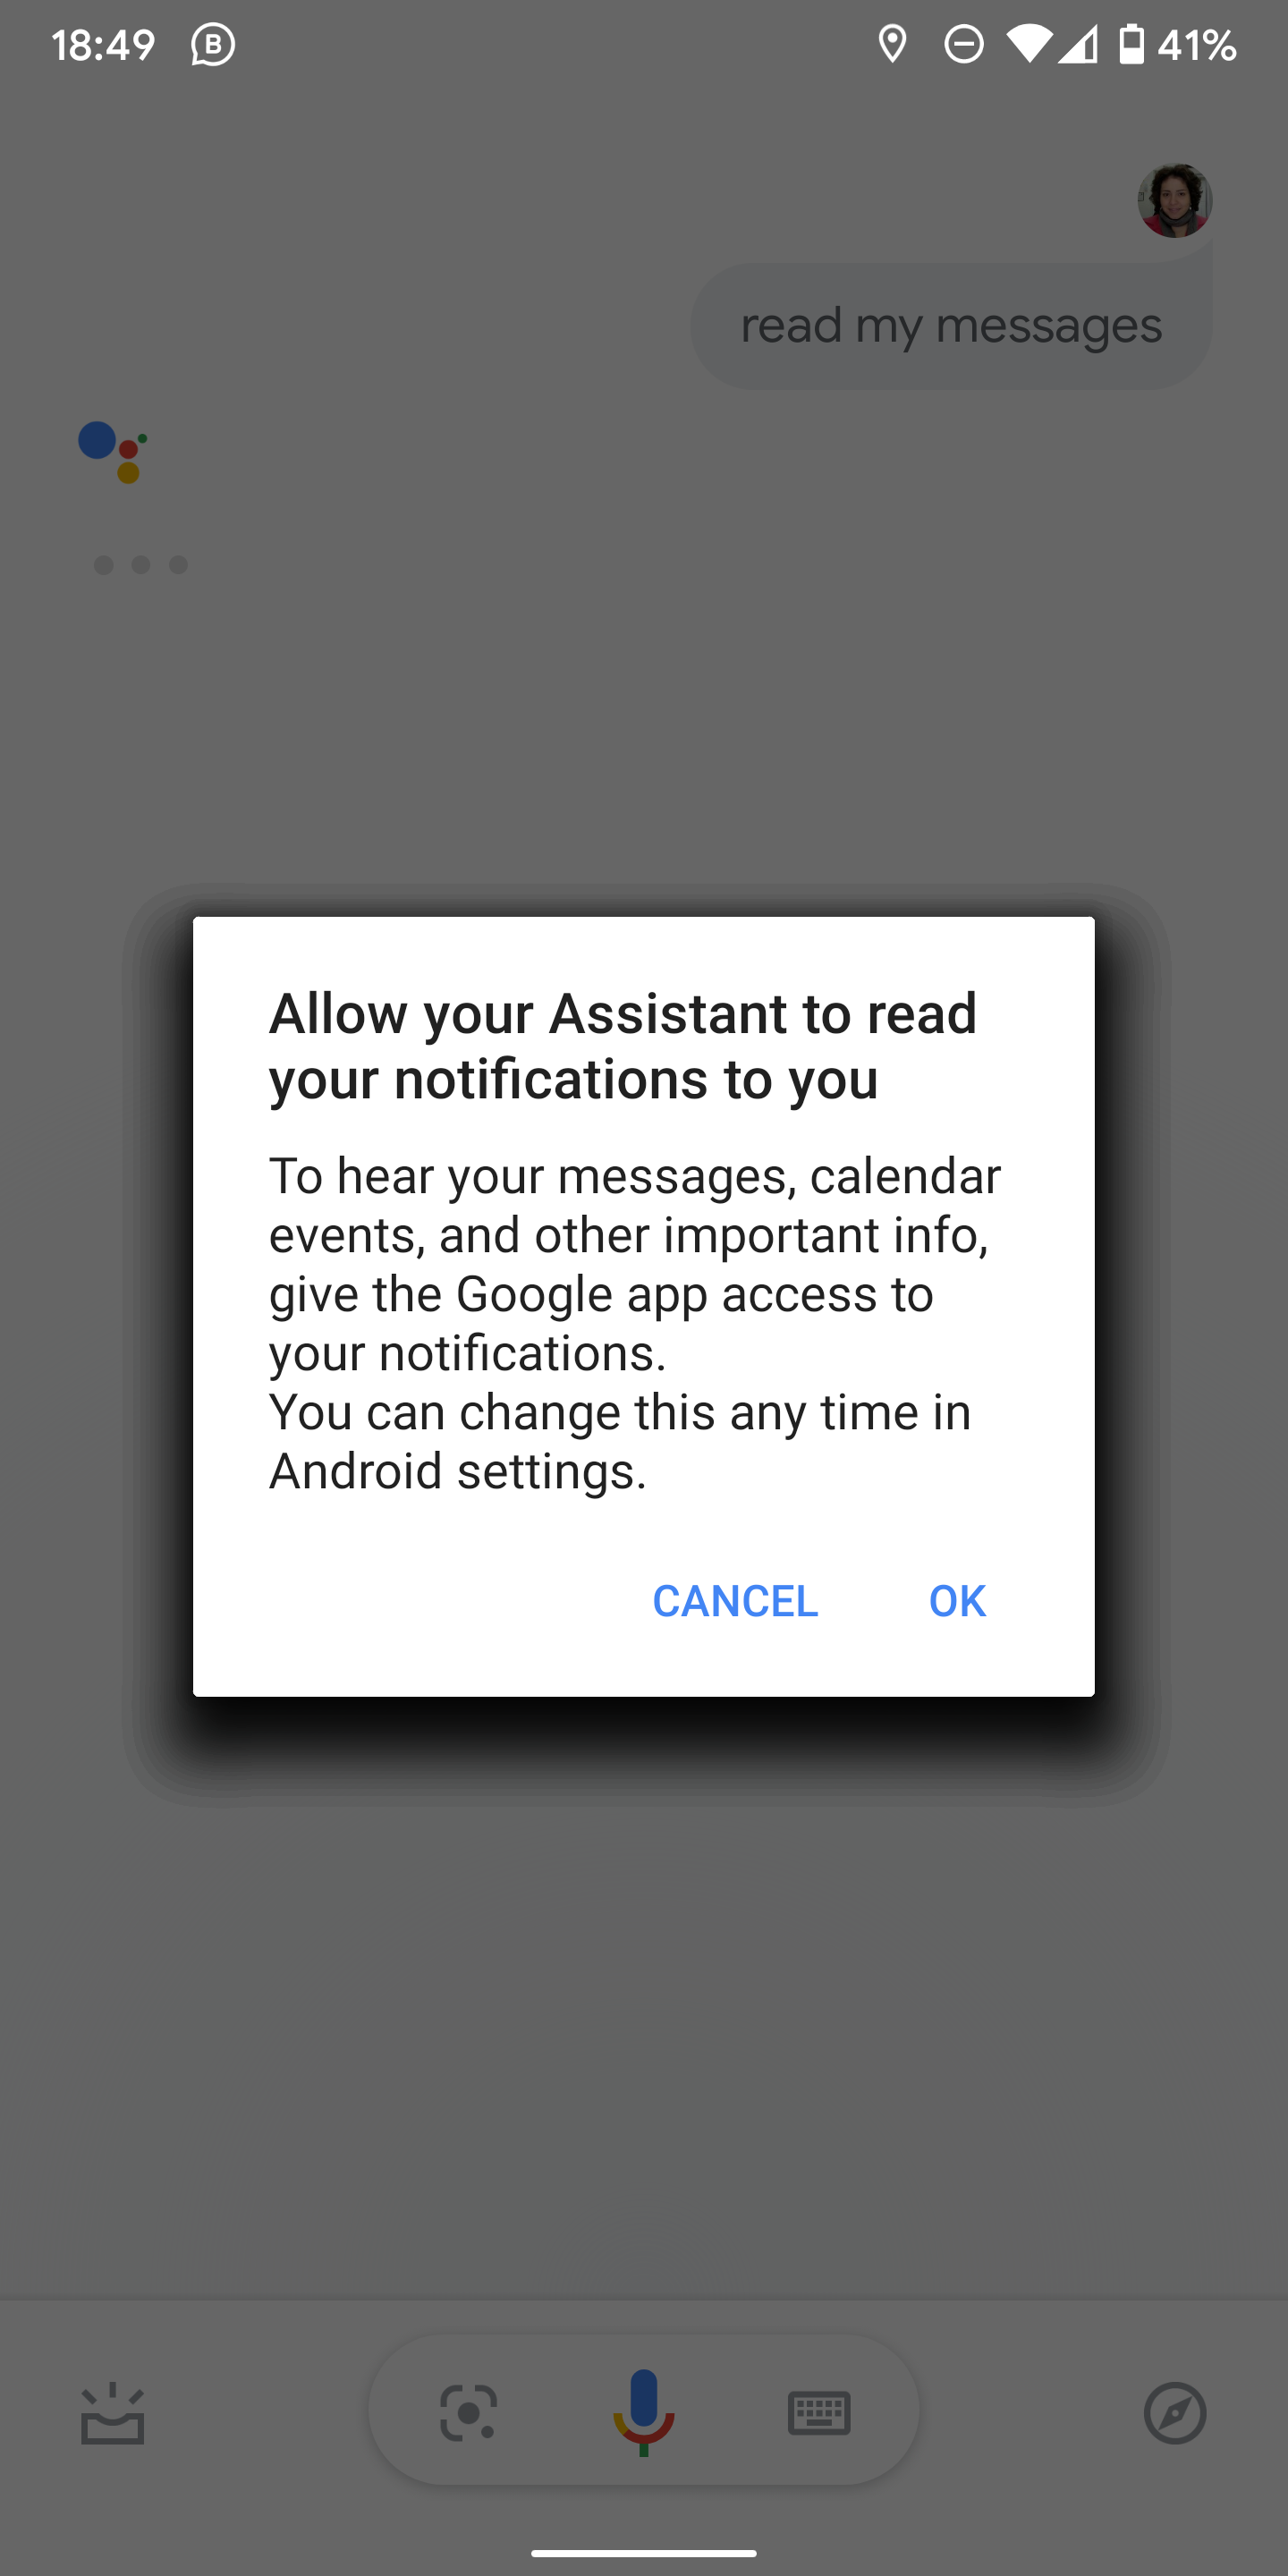 Google Assistant can now read and reply to messages from